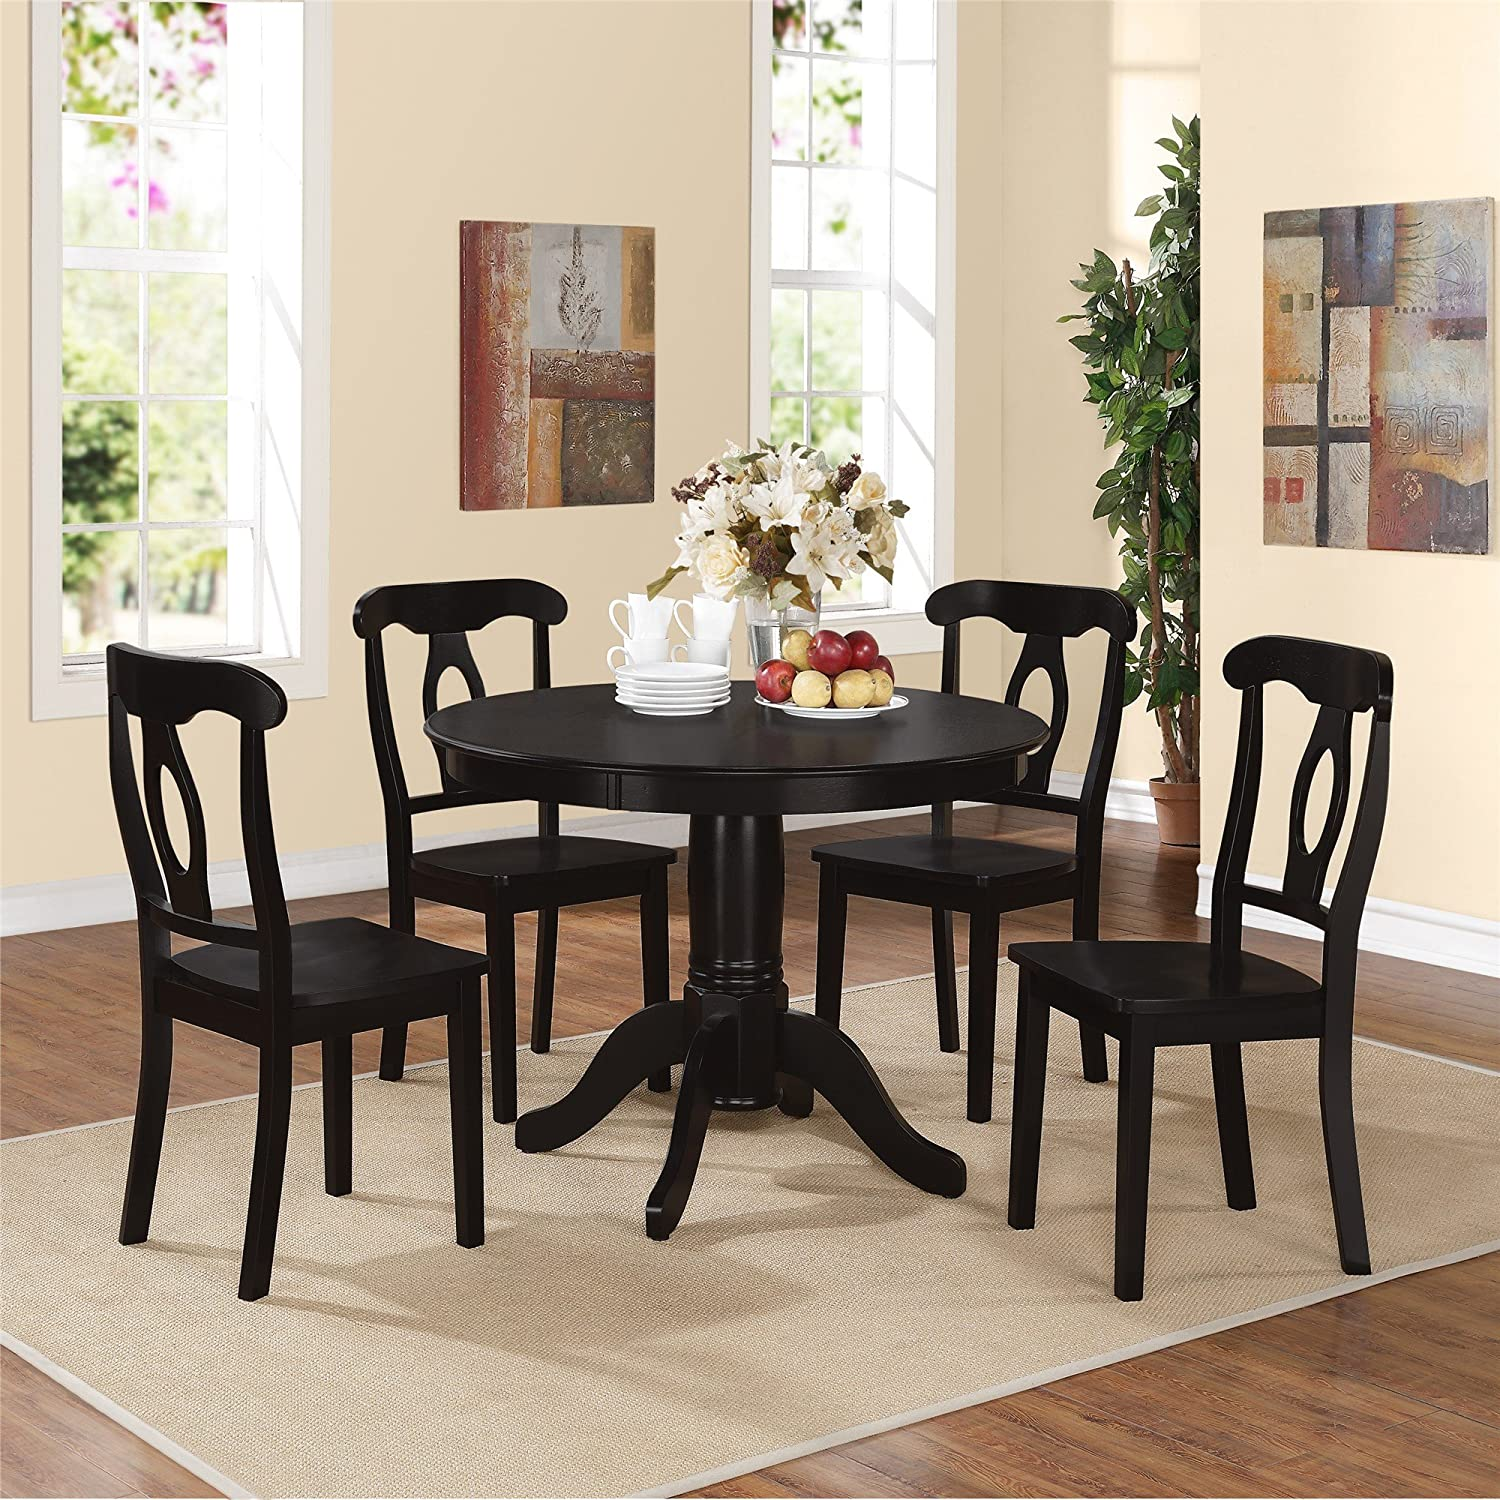 Pedestal Dining Table Set Amazoncom Dorel Living 5 Piece Aubrey Traditional Pedestal